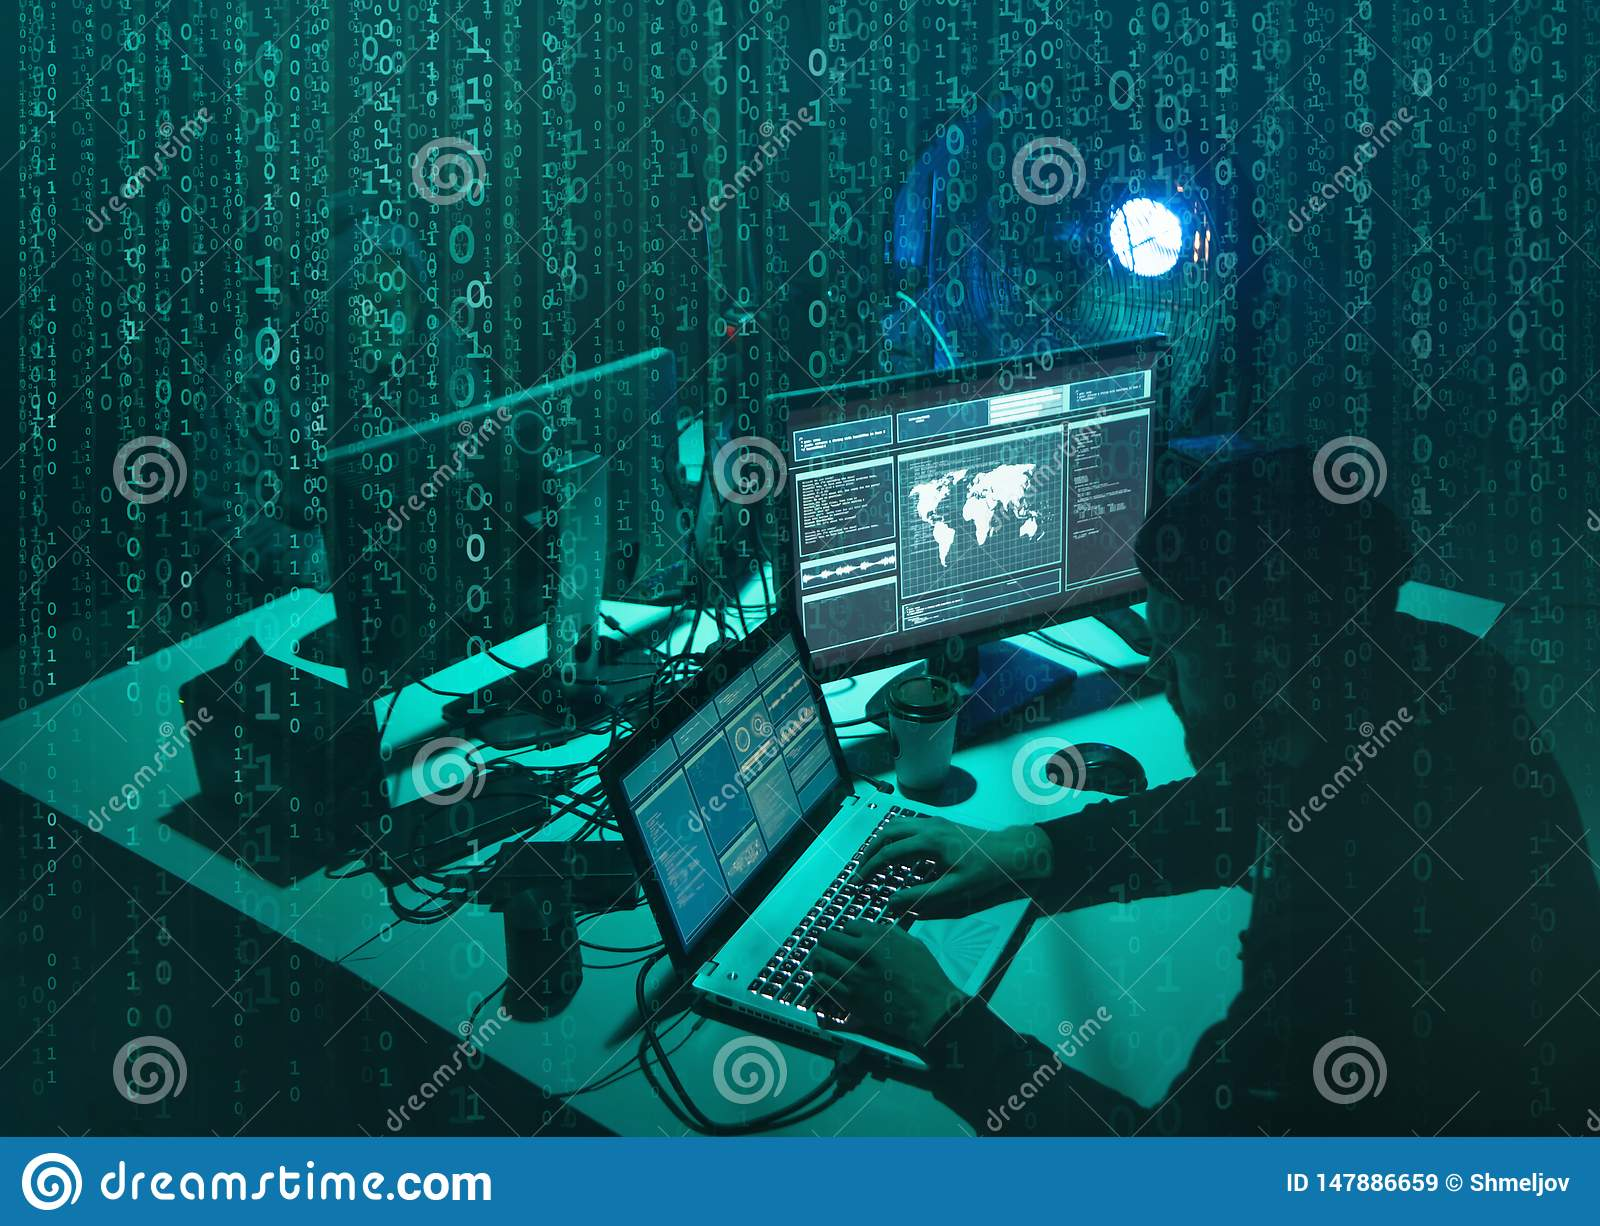 Wanted hackers coding virus ransomware using laptops and computers. Cyber attack, system breaking and malware concept.